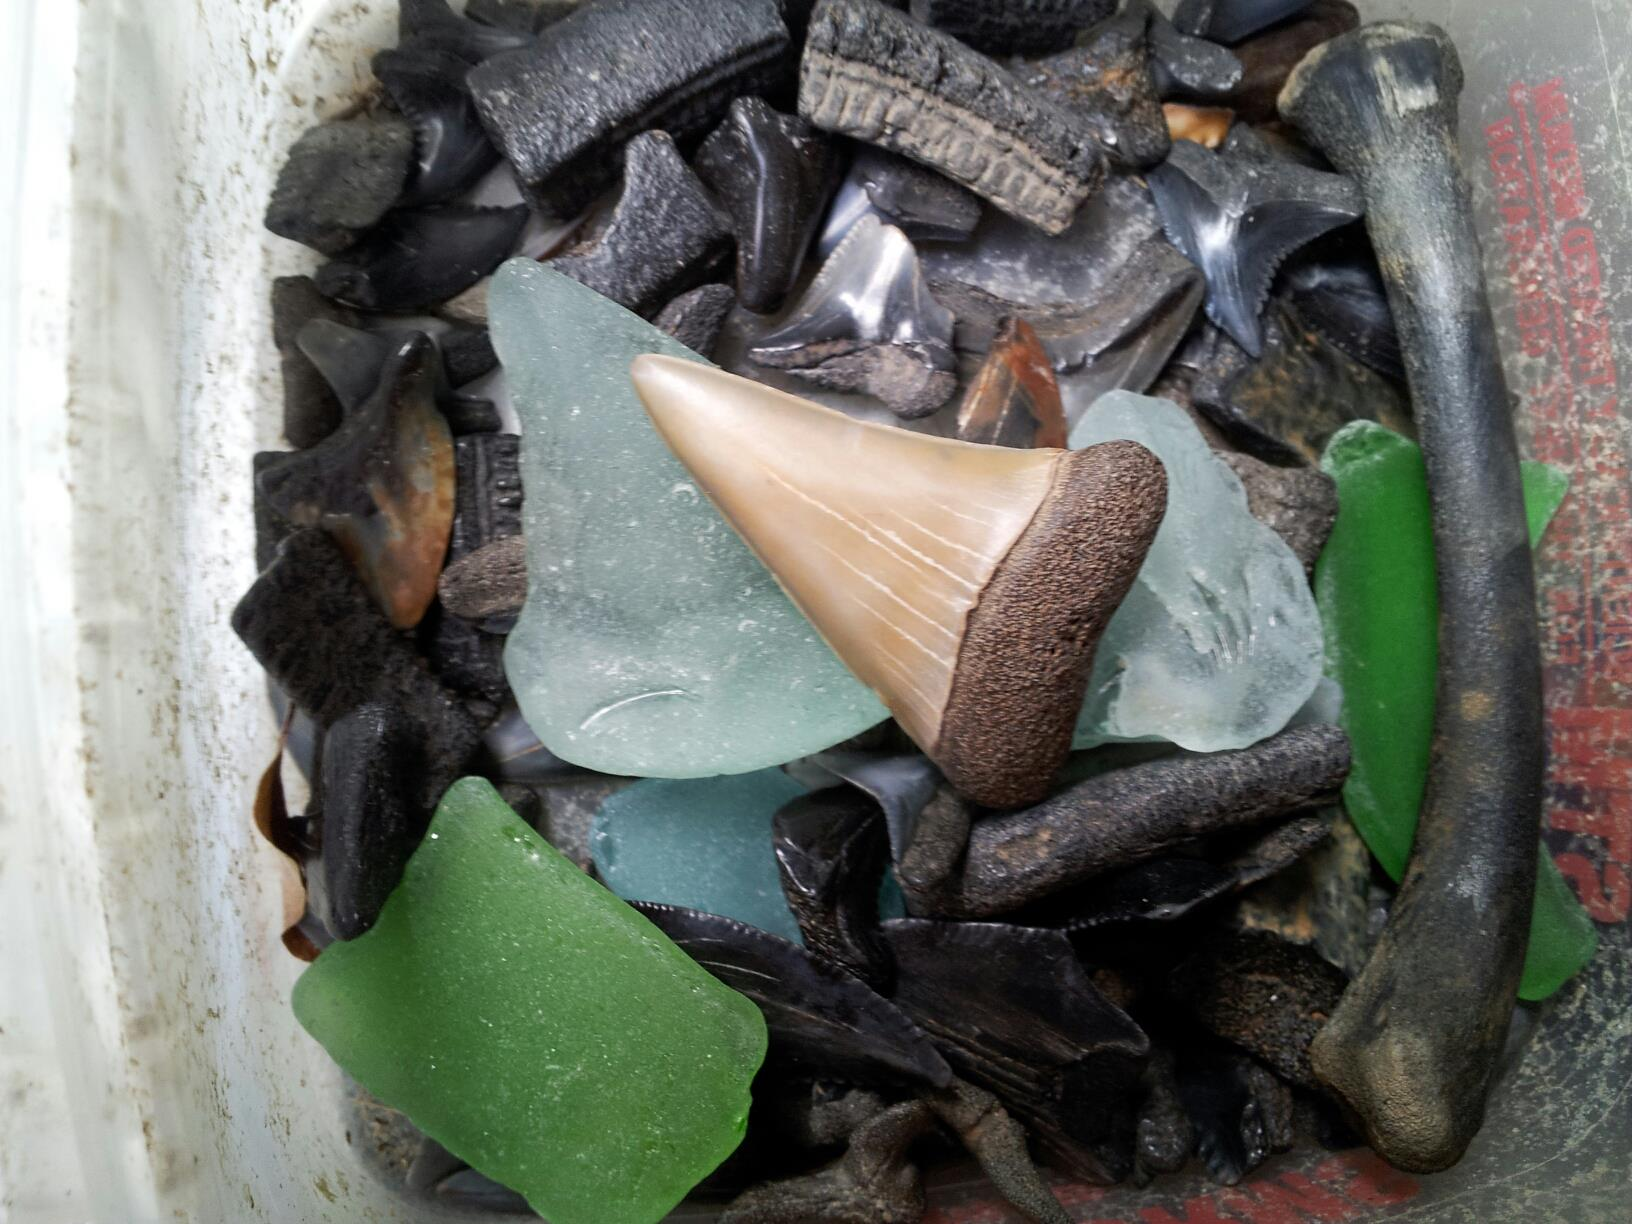 Entertainment Patuxent River, MD Fossilized shark teeth and sea glass